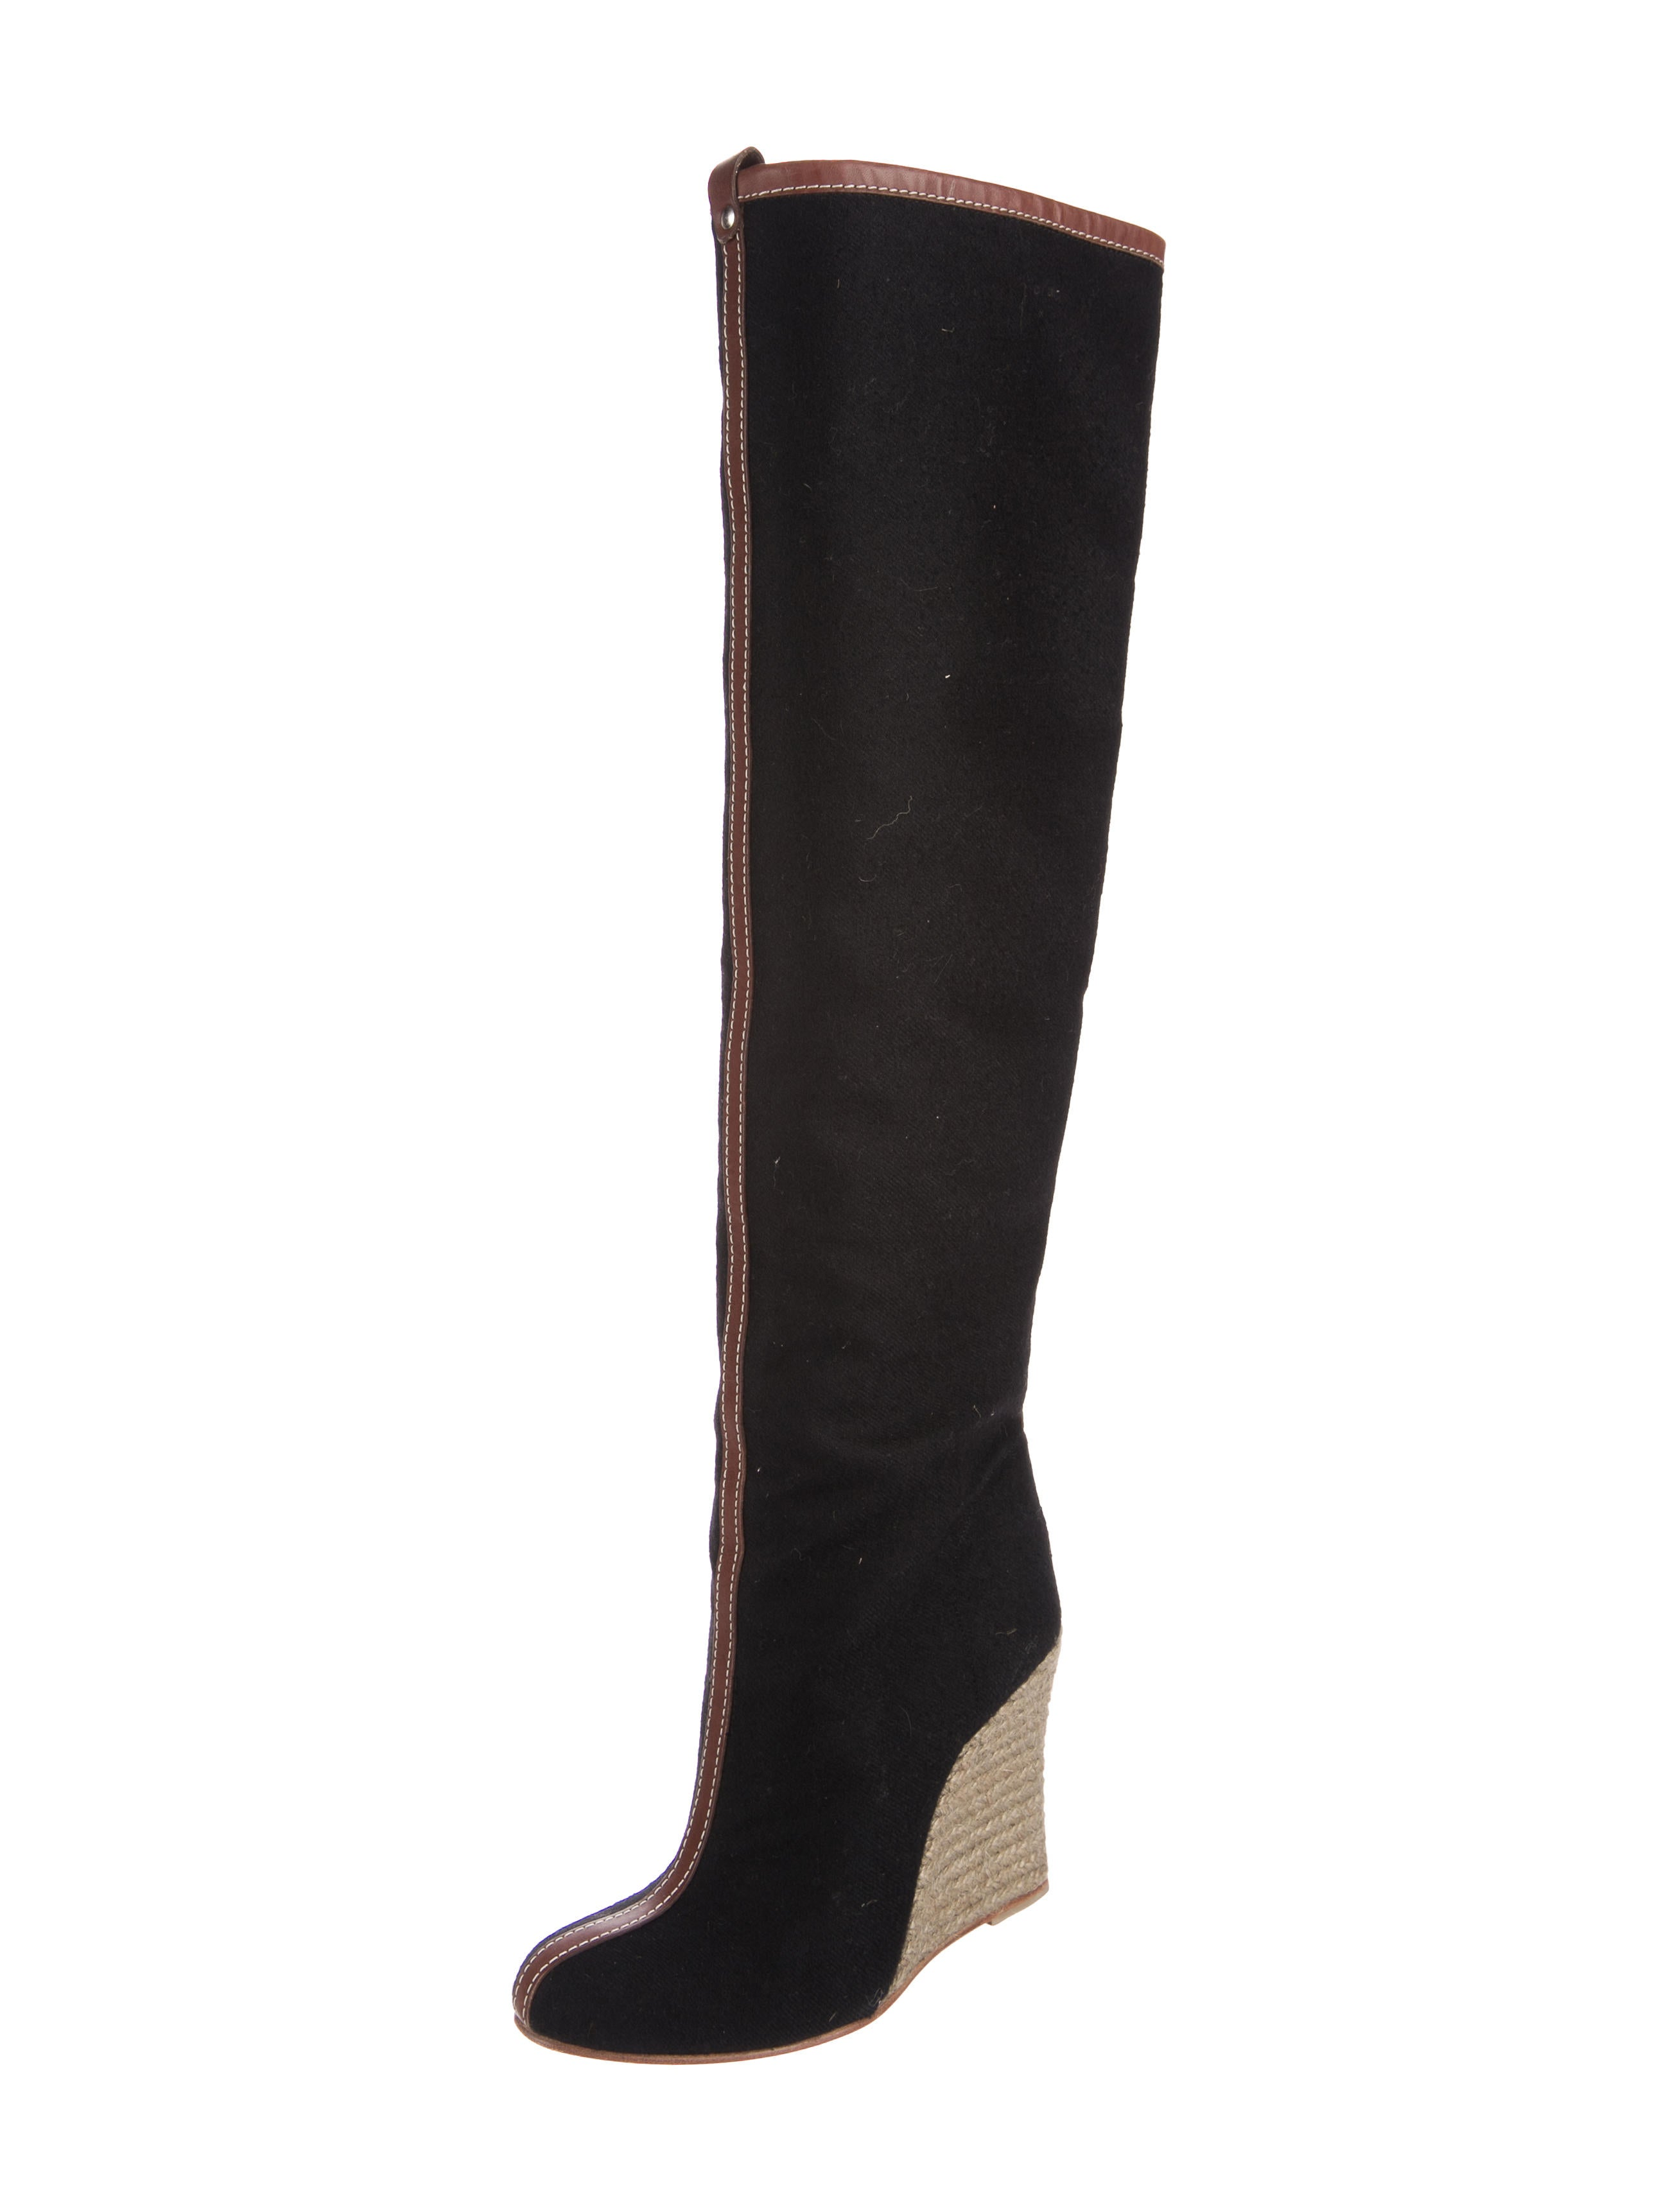 Christian Louboutin Jessy Knee High Wedge Boots Shoes